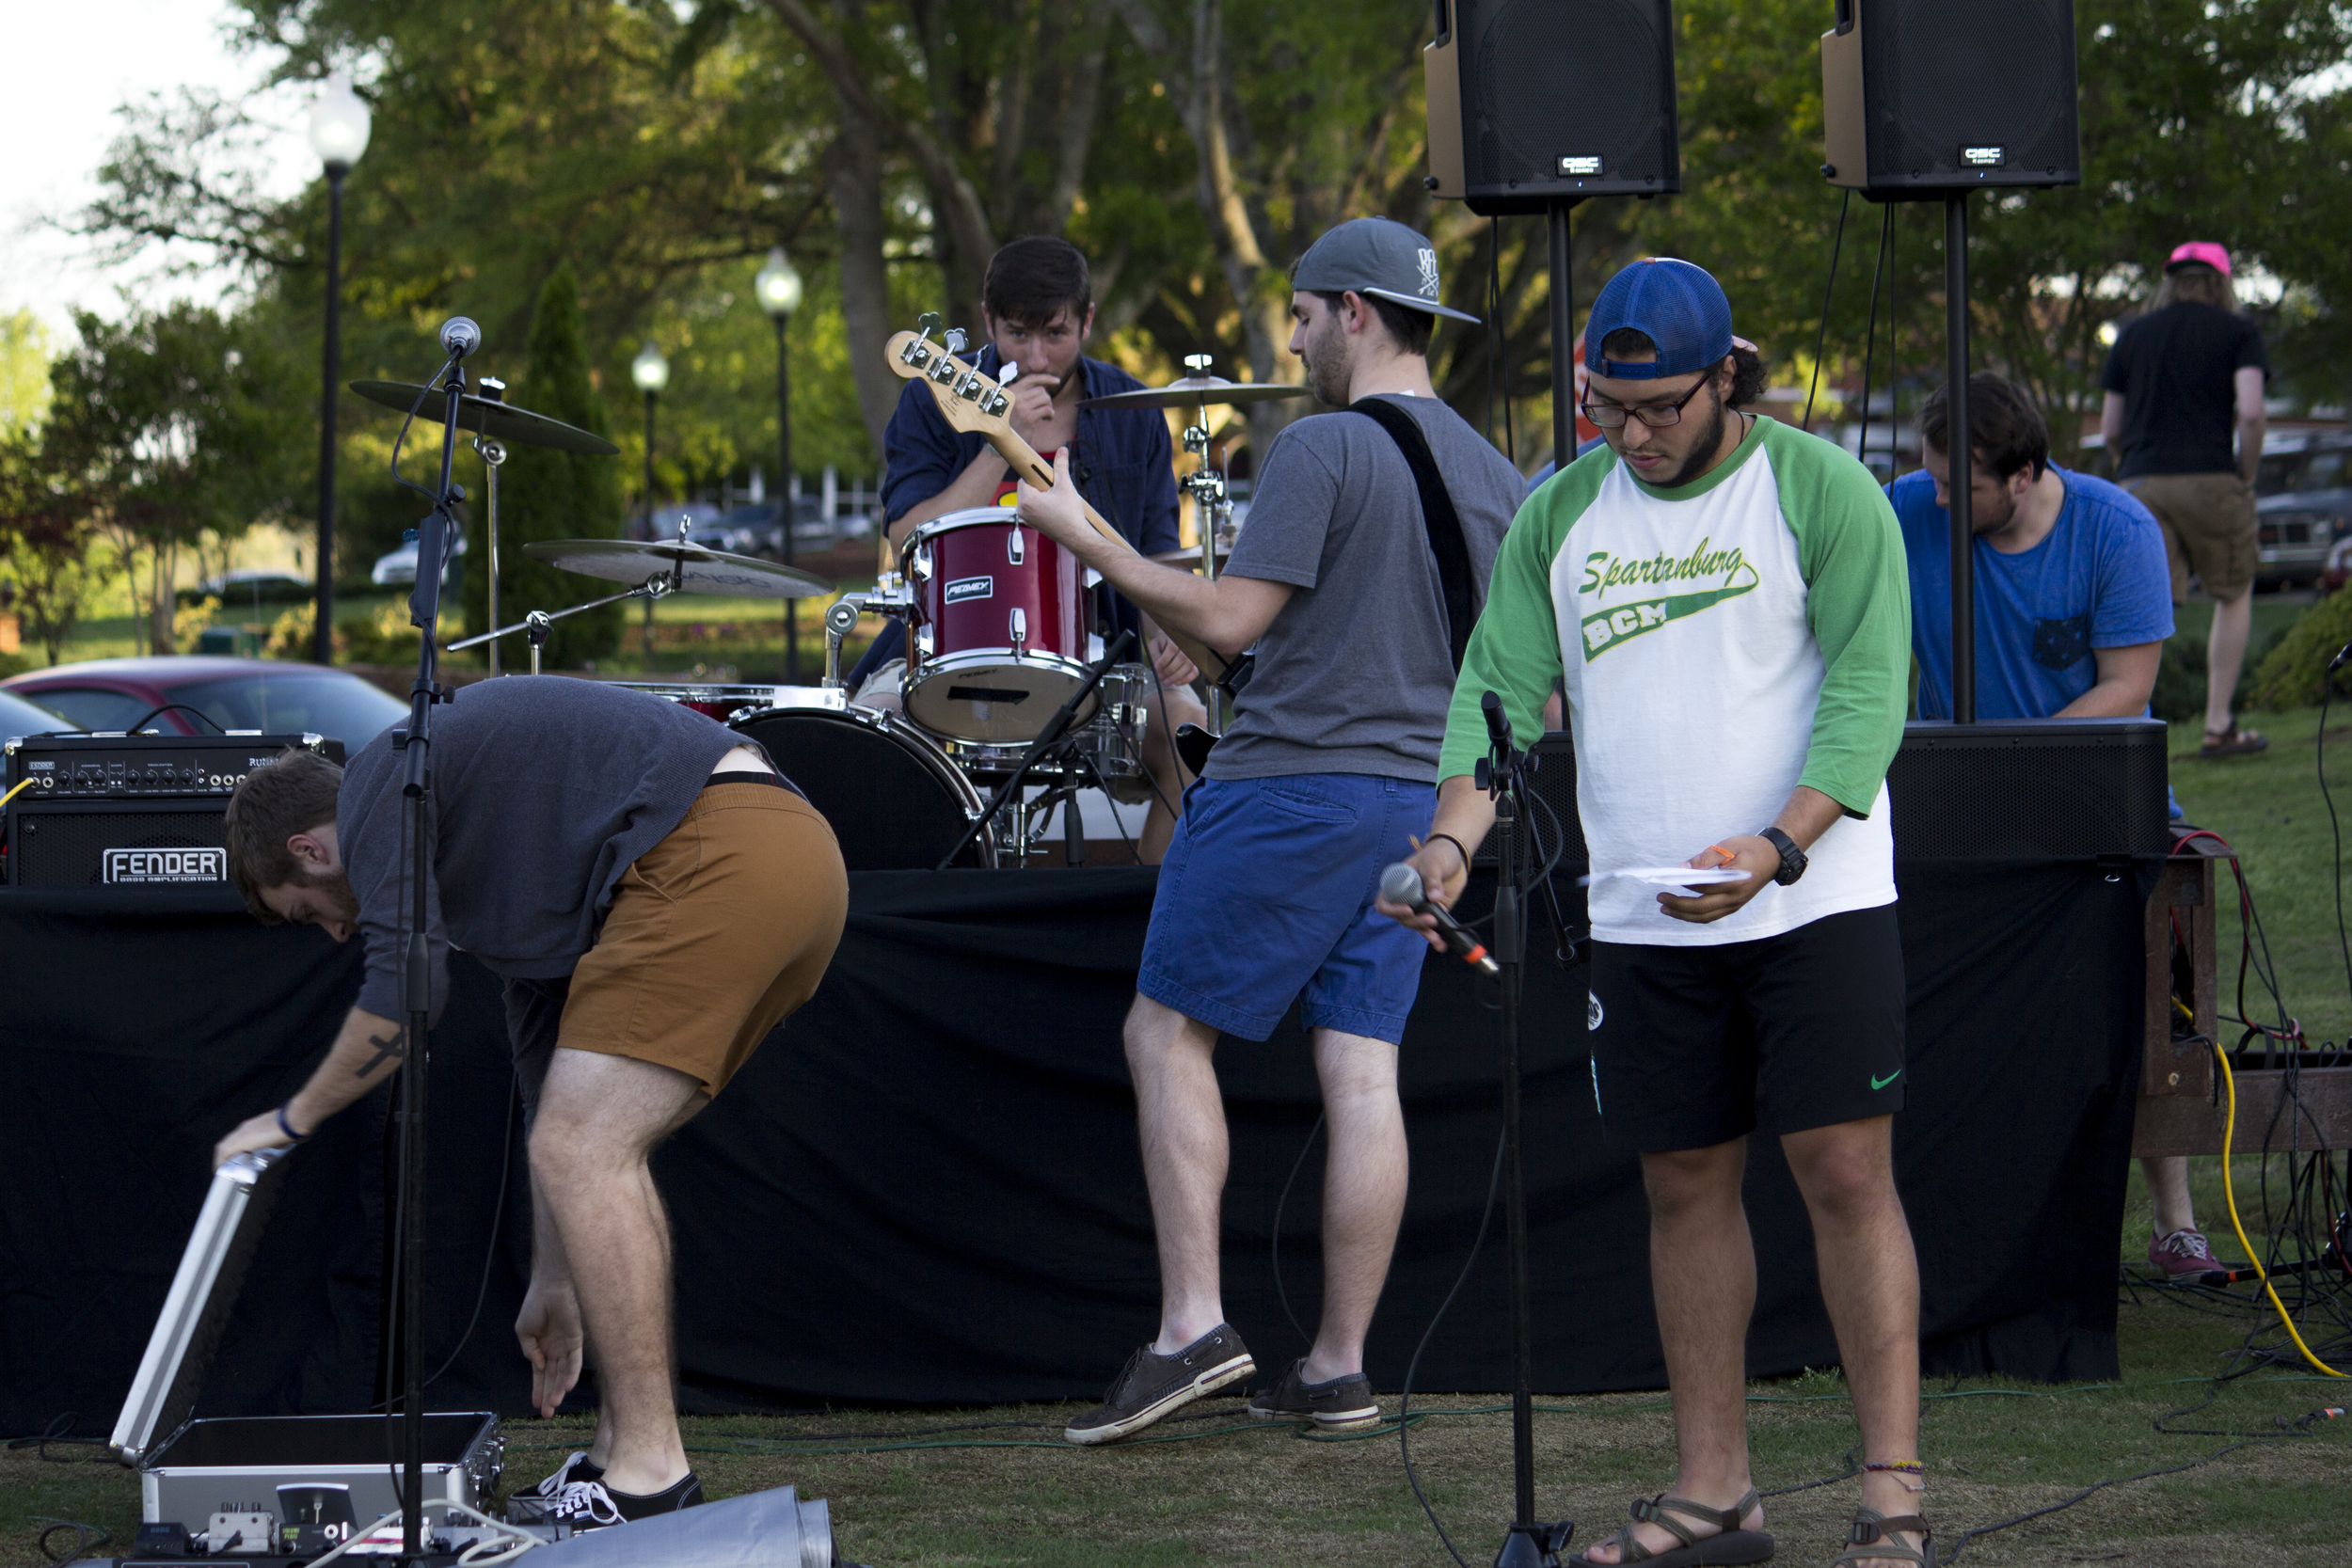 Members of different bands test out their gear while the sound guys run last minute tests.